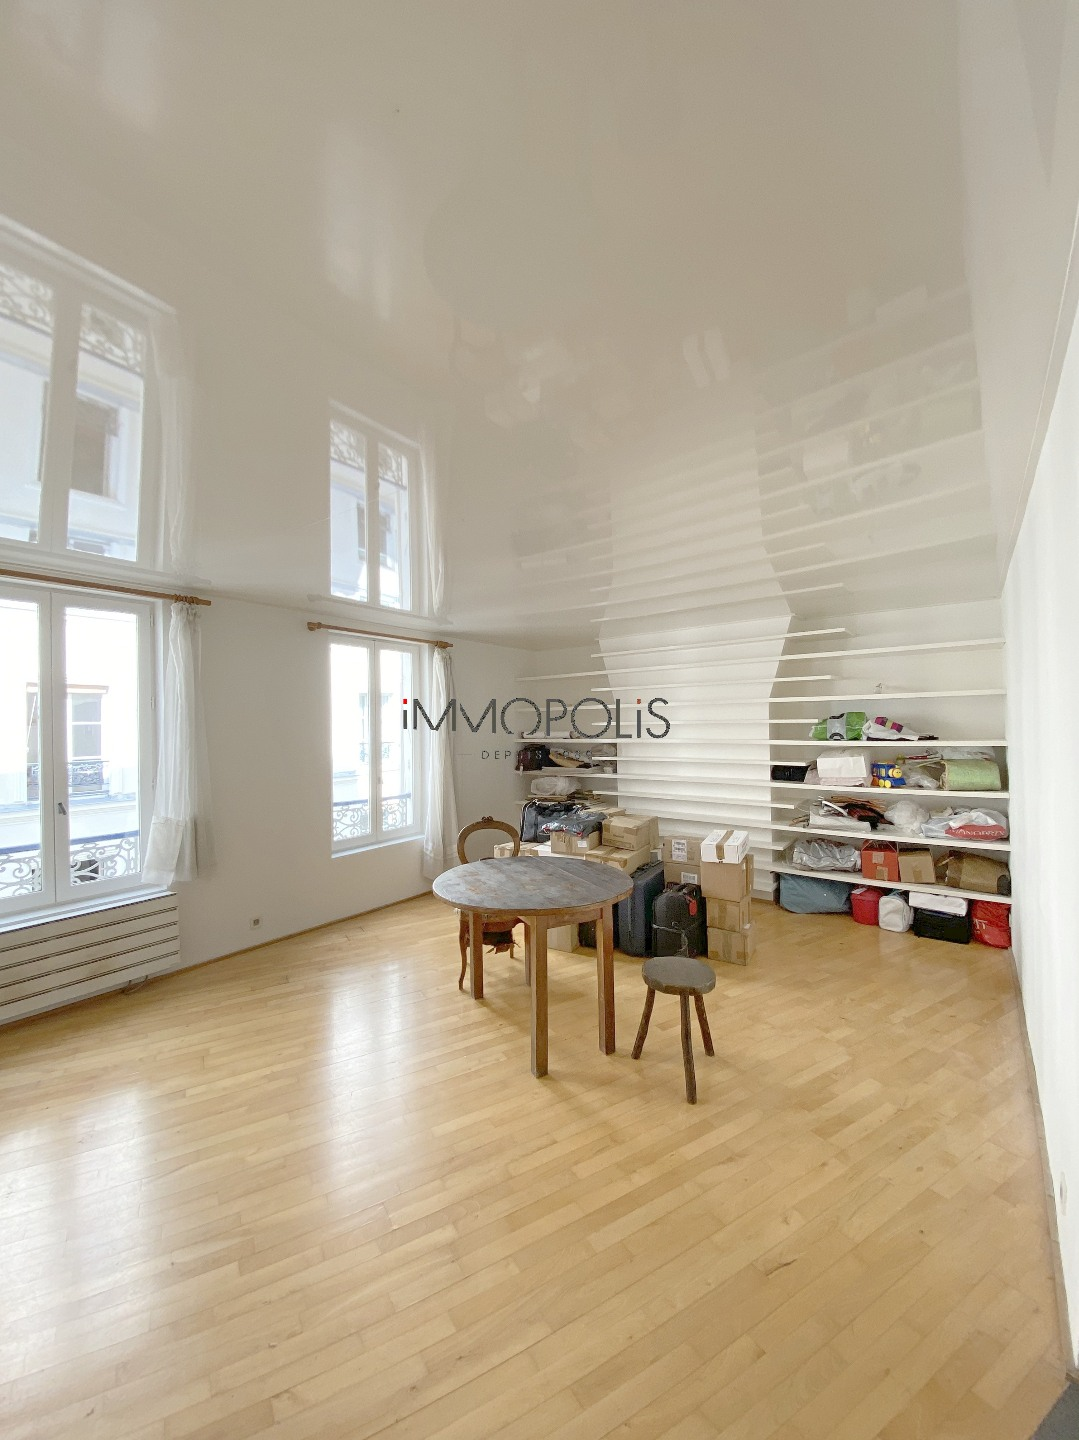 In the heart of the Abbesses, rue Berthe, beautiful 2 room apartment with a perfect plan, in good condition, crossing onto a quiet street and open courtyard! 9